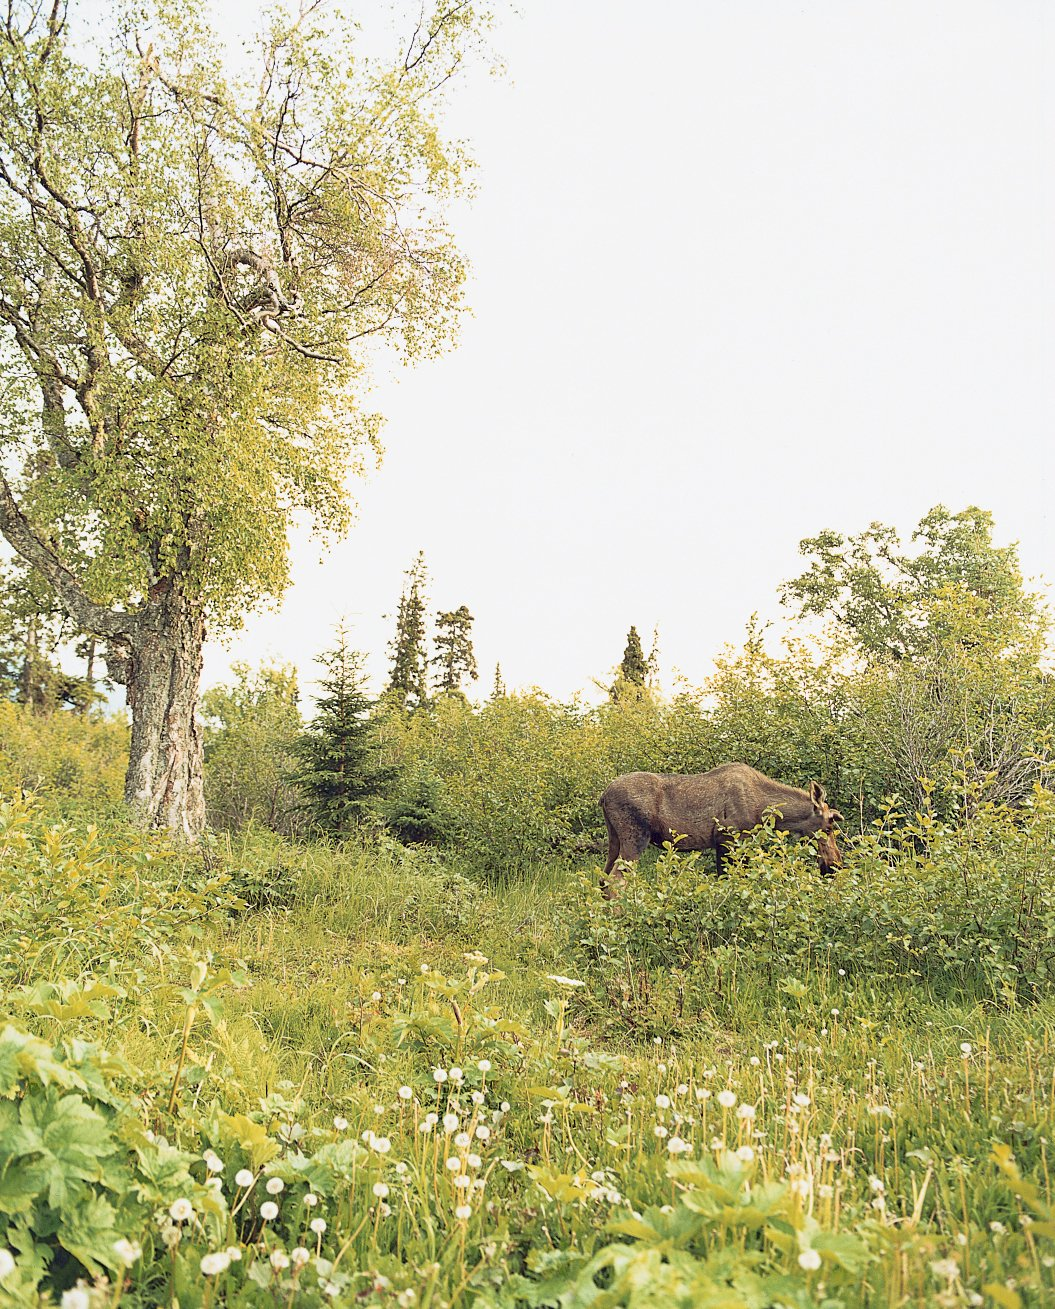 Valerie Phelps and Peter Burke's immediate backyard frequently plays host to moose and other wildlife in search of an afternoon snack. Alaska: The Final (Architectural) Frontier - Photo 3 of 9